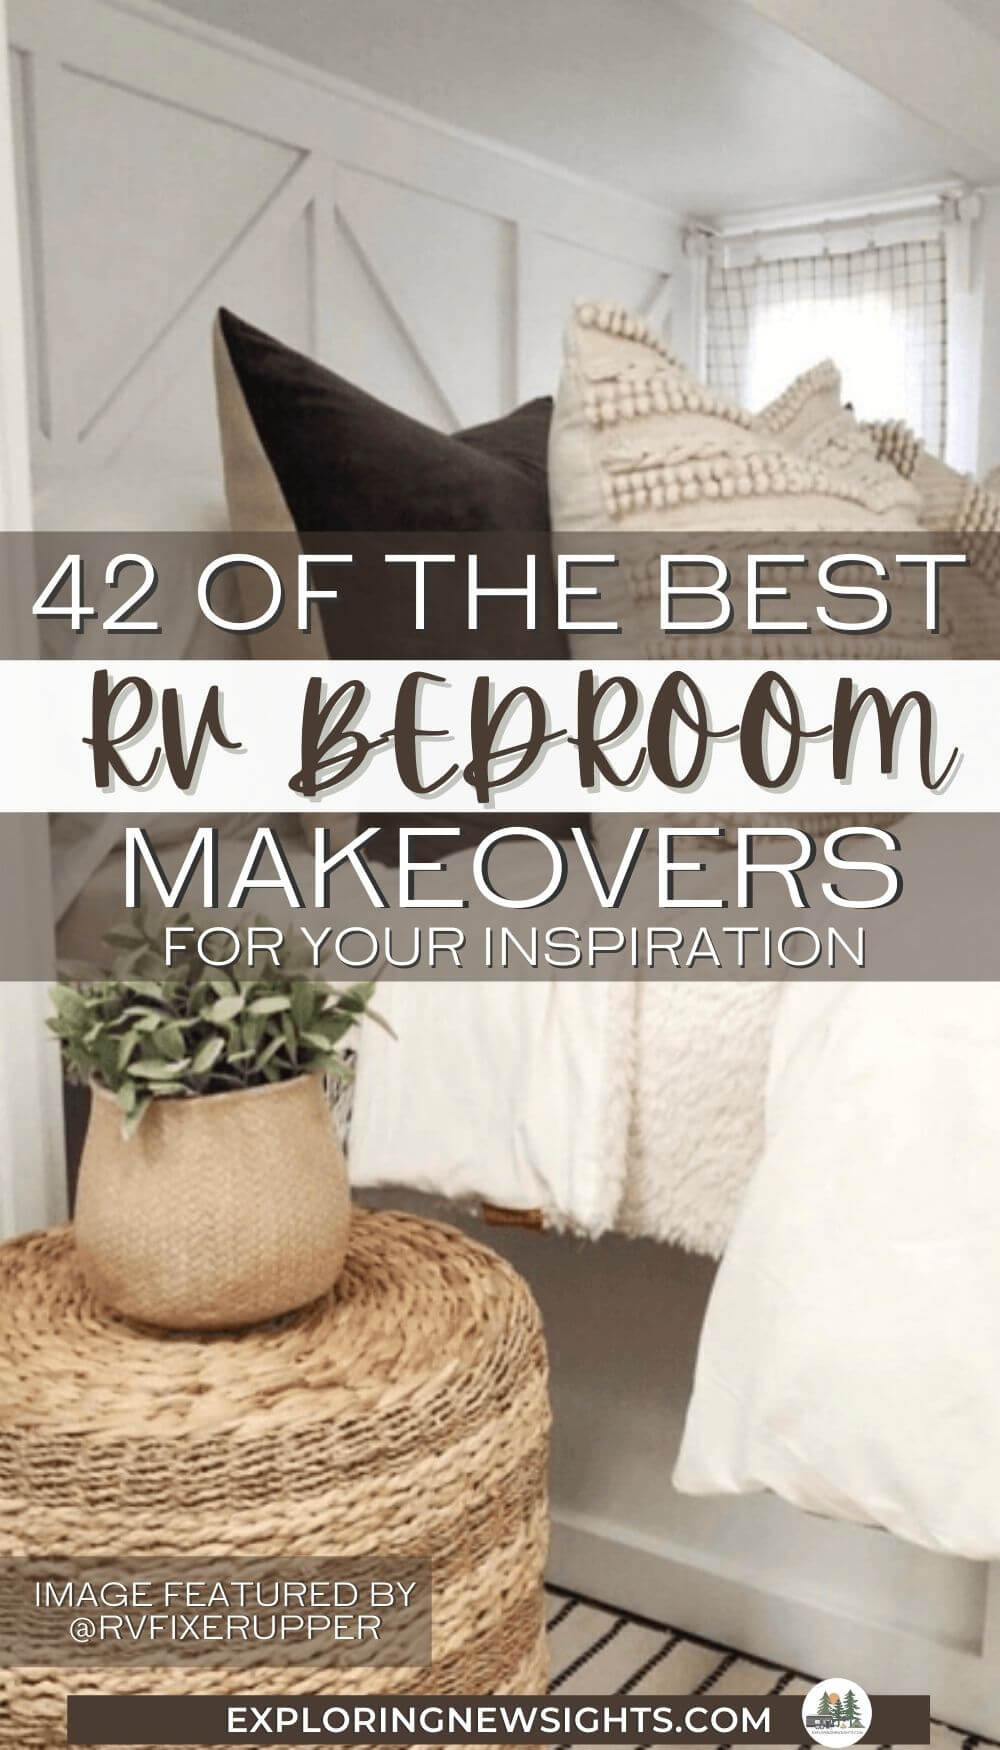 RV Bedroom Makeovers